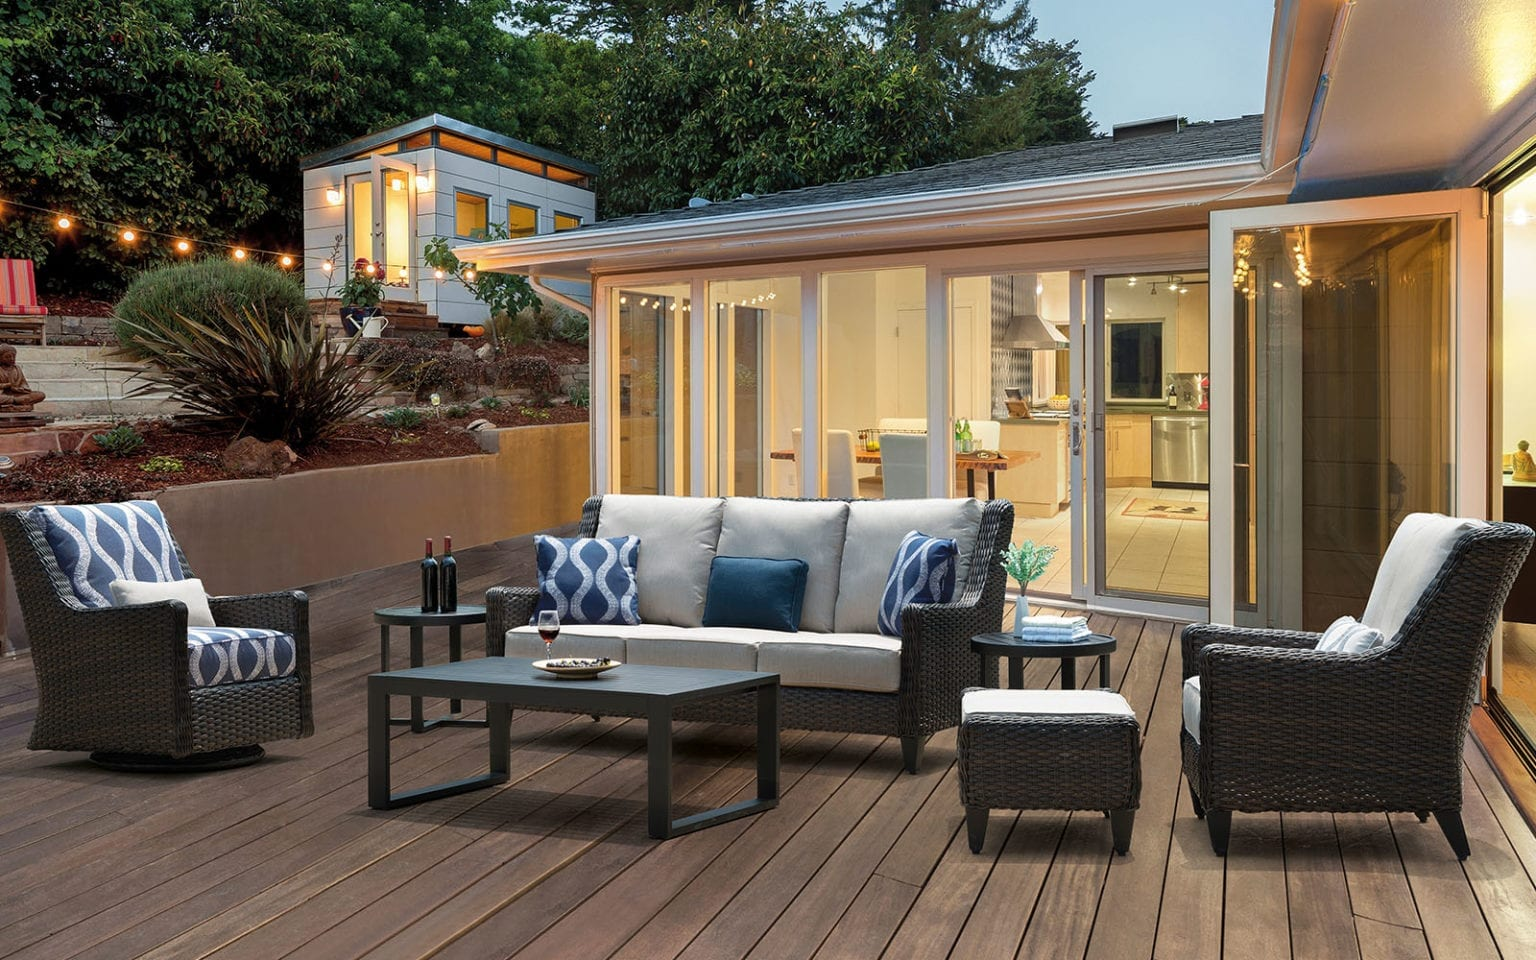 Where to Find Long Island Patio Furniture for Sale